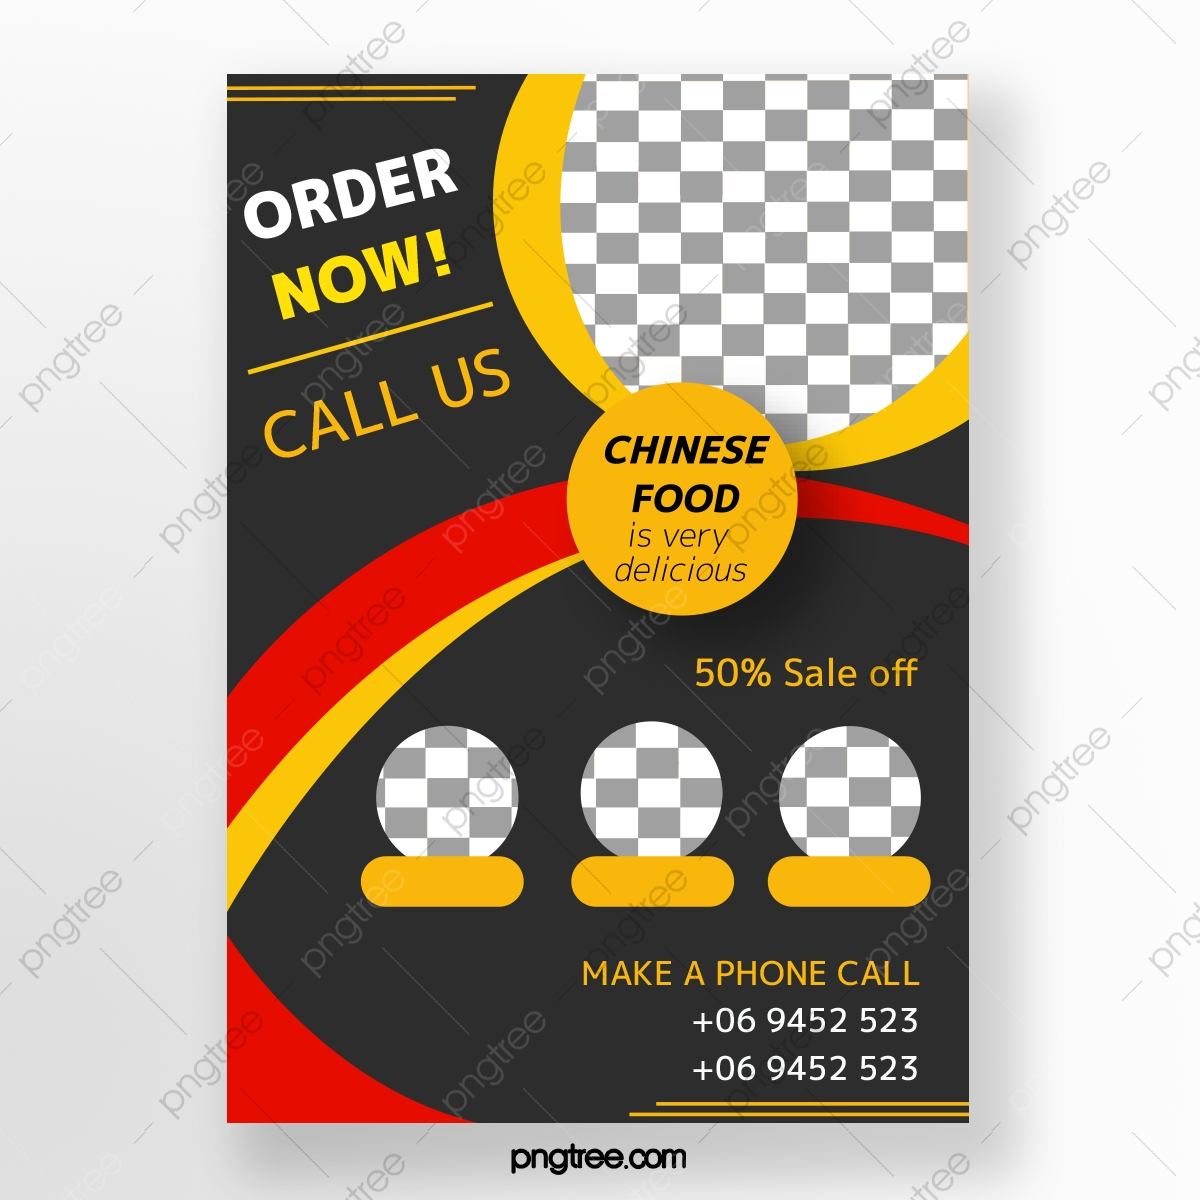 Chinese Restaurant Png Images Vector And Psd Files Free Download On Pngtree